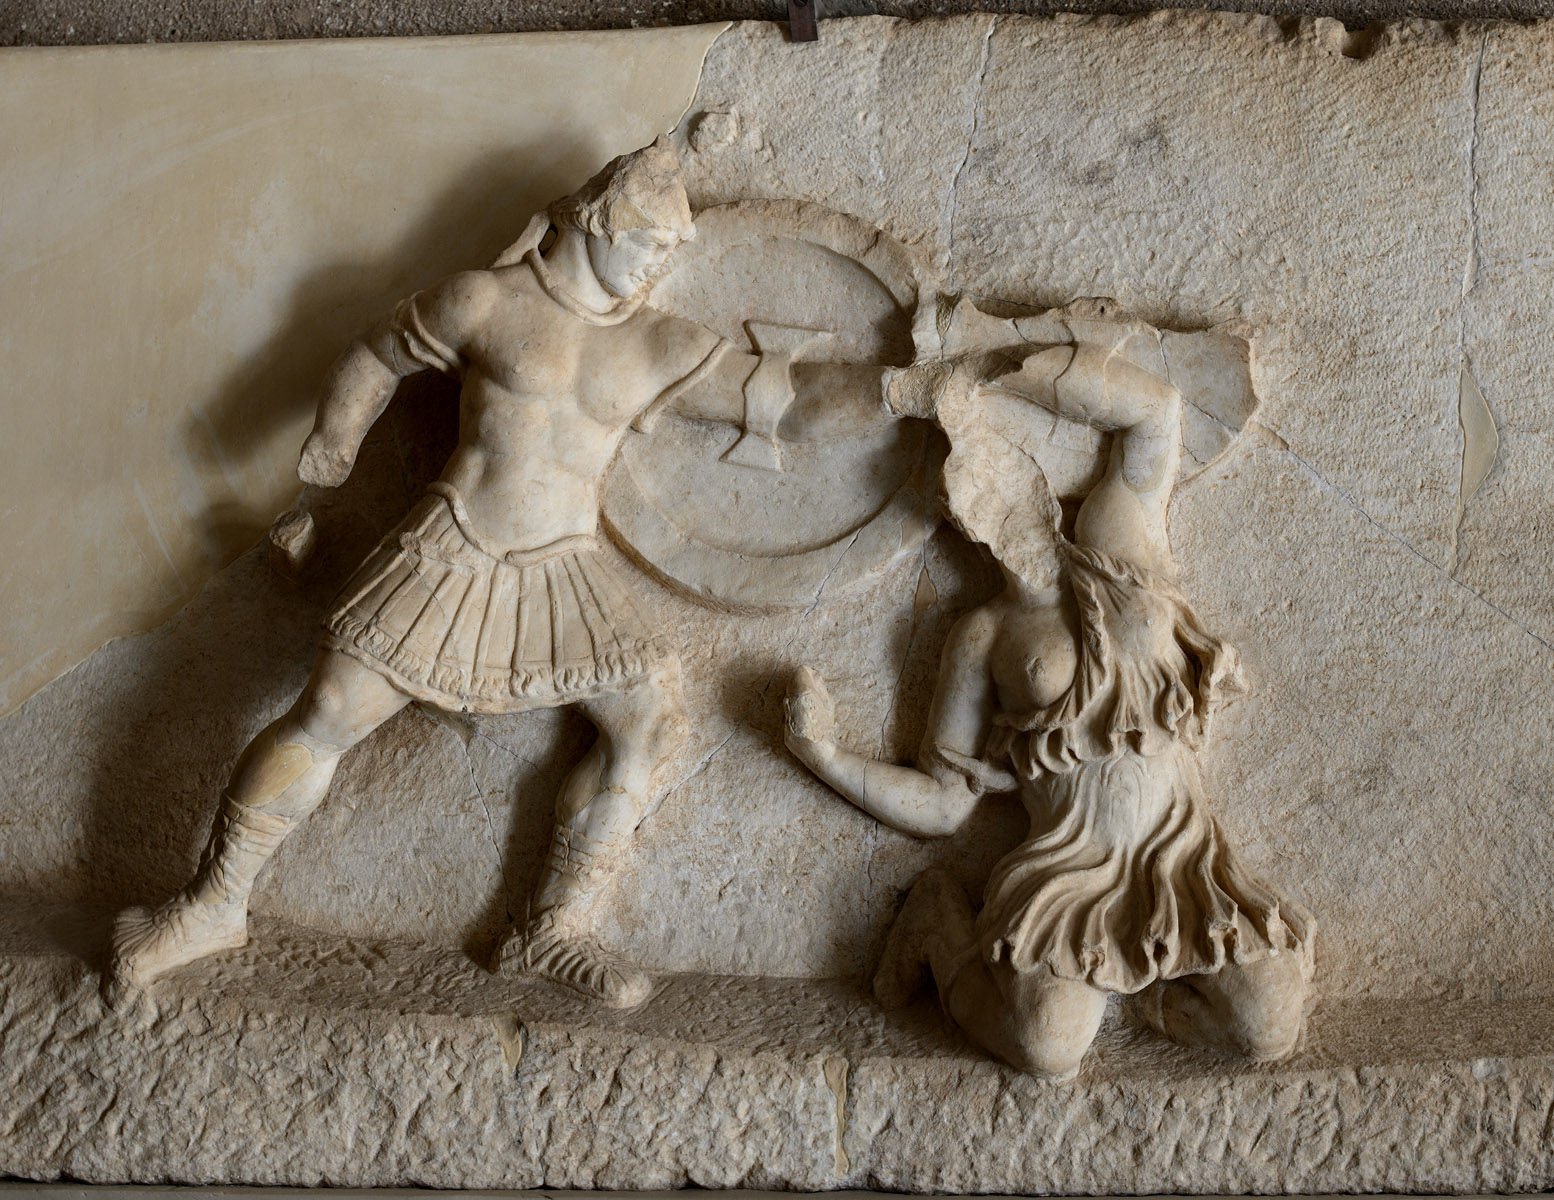 Scene of amazonomachia (Greek fighting a kneeling amazon). Marble. Mid-2nd cent. CE. Corinth, Archaeological Museum of Ancient Corinth